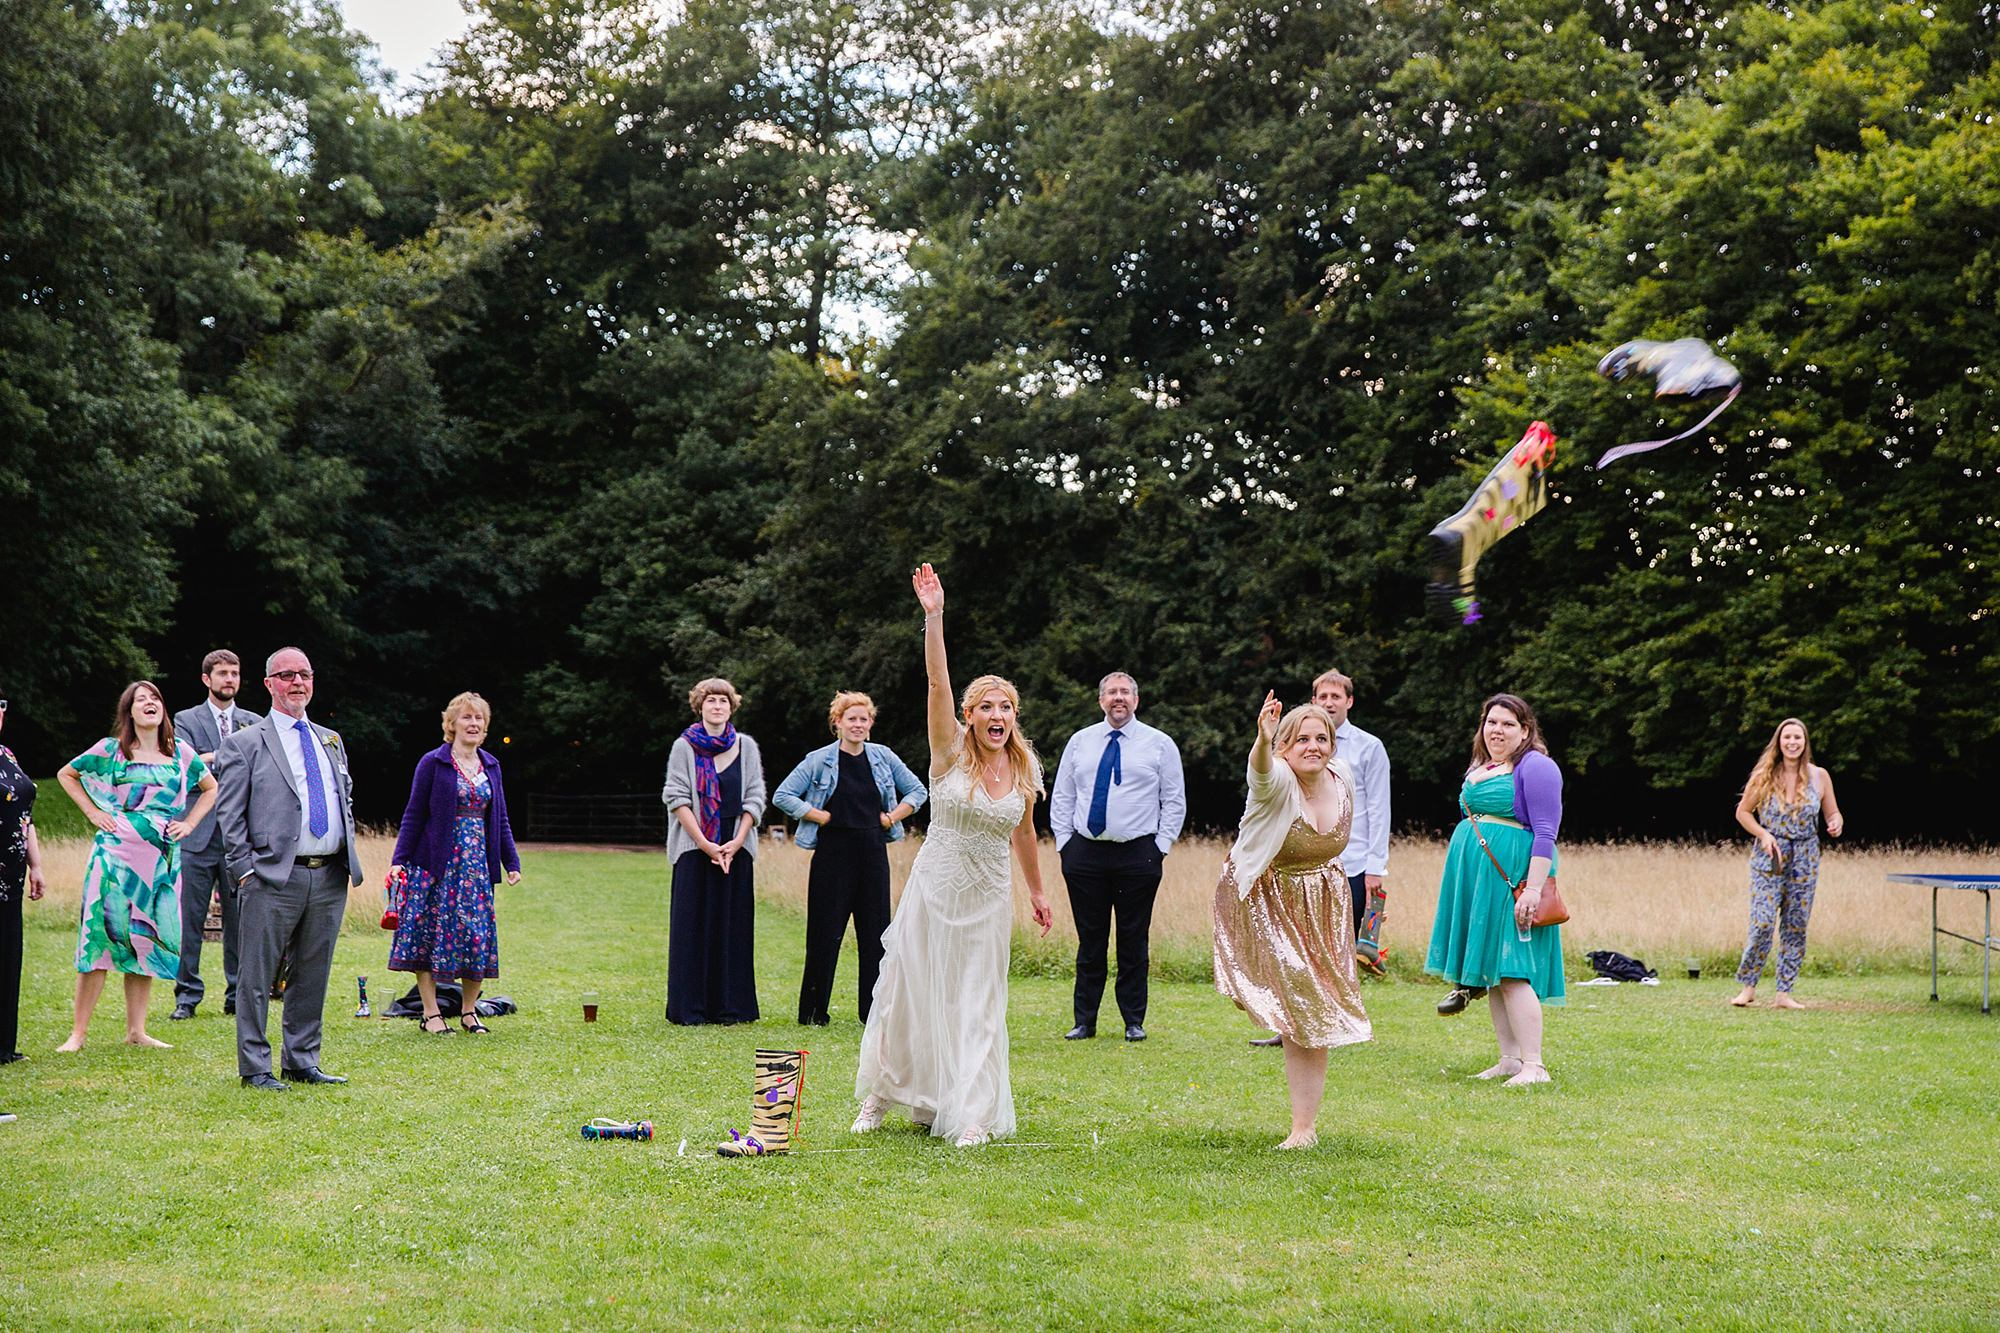 Woodland Weddings Tring bride throwing wellies